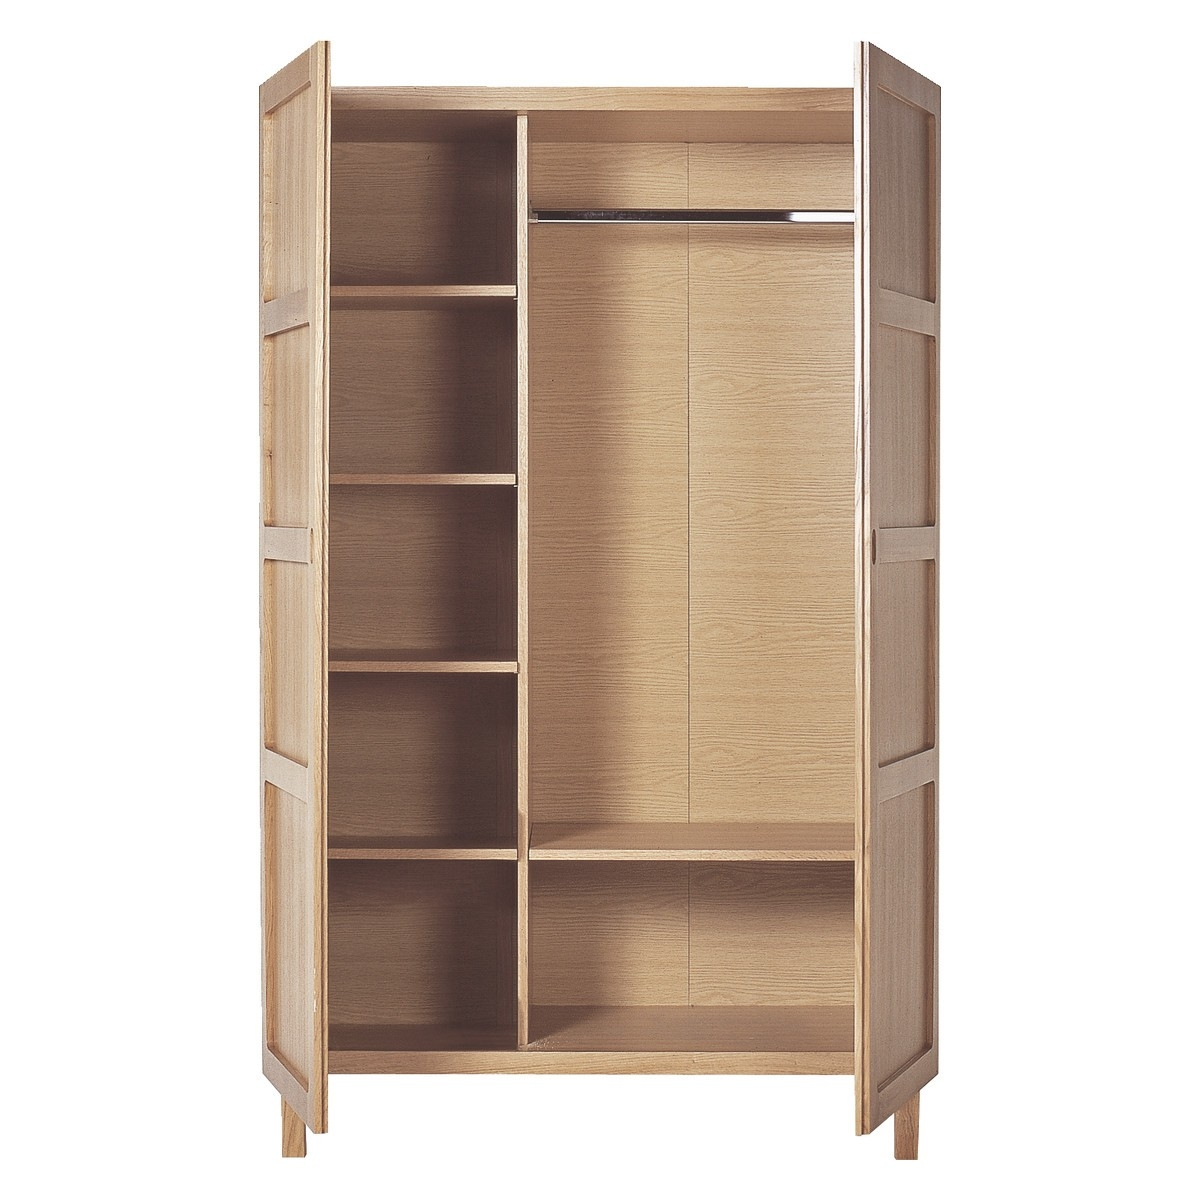 Two Door Wardrobe With Shelves Hallway Furniture Ideas Pertaining To Wardrobes With Shelves (Image 11 of 15)